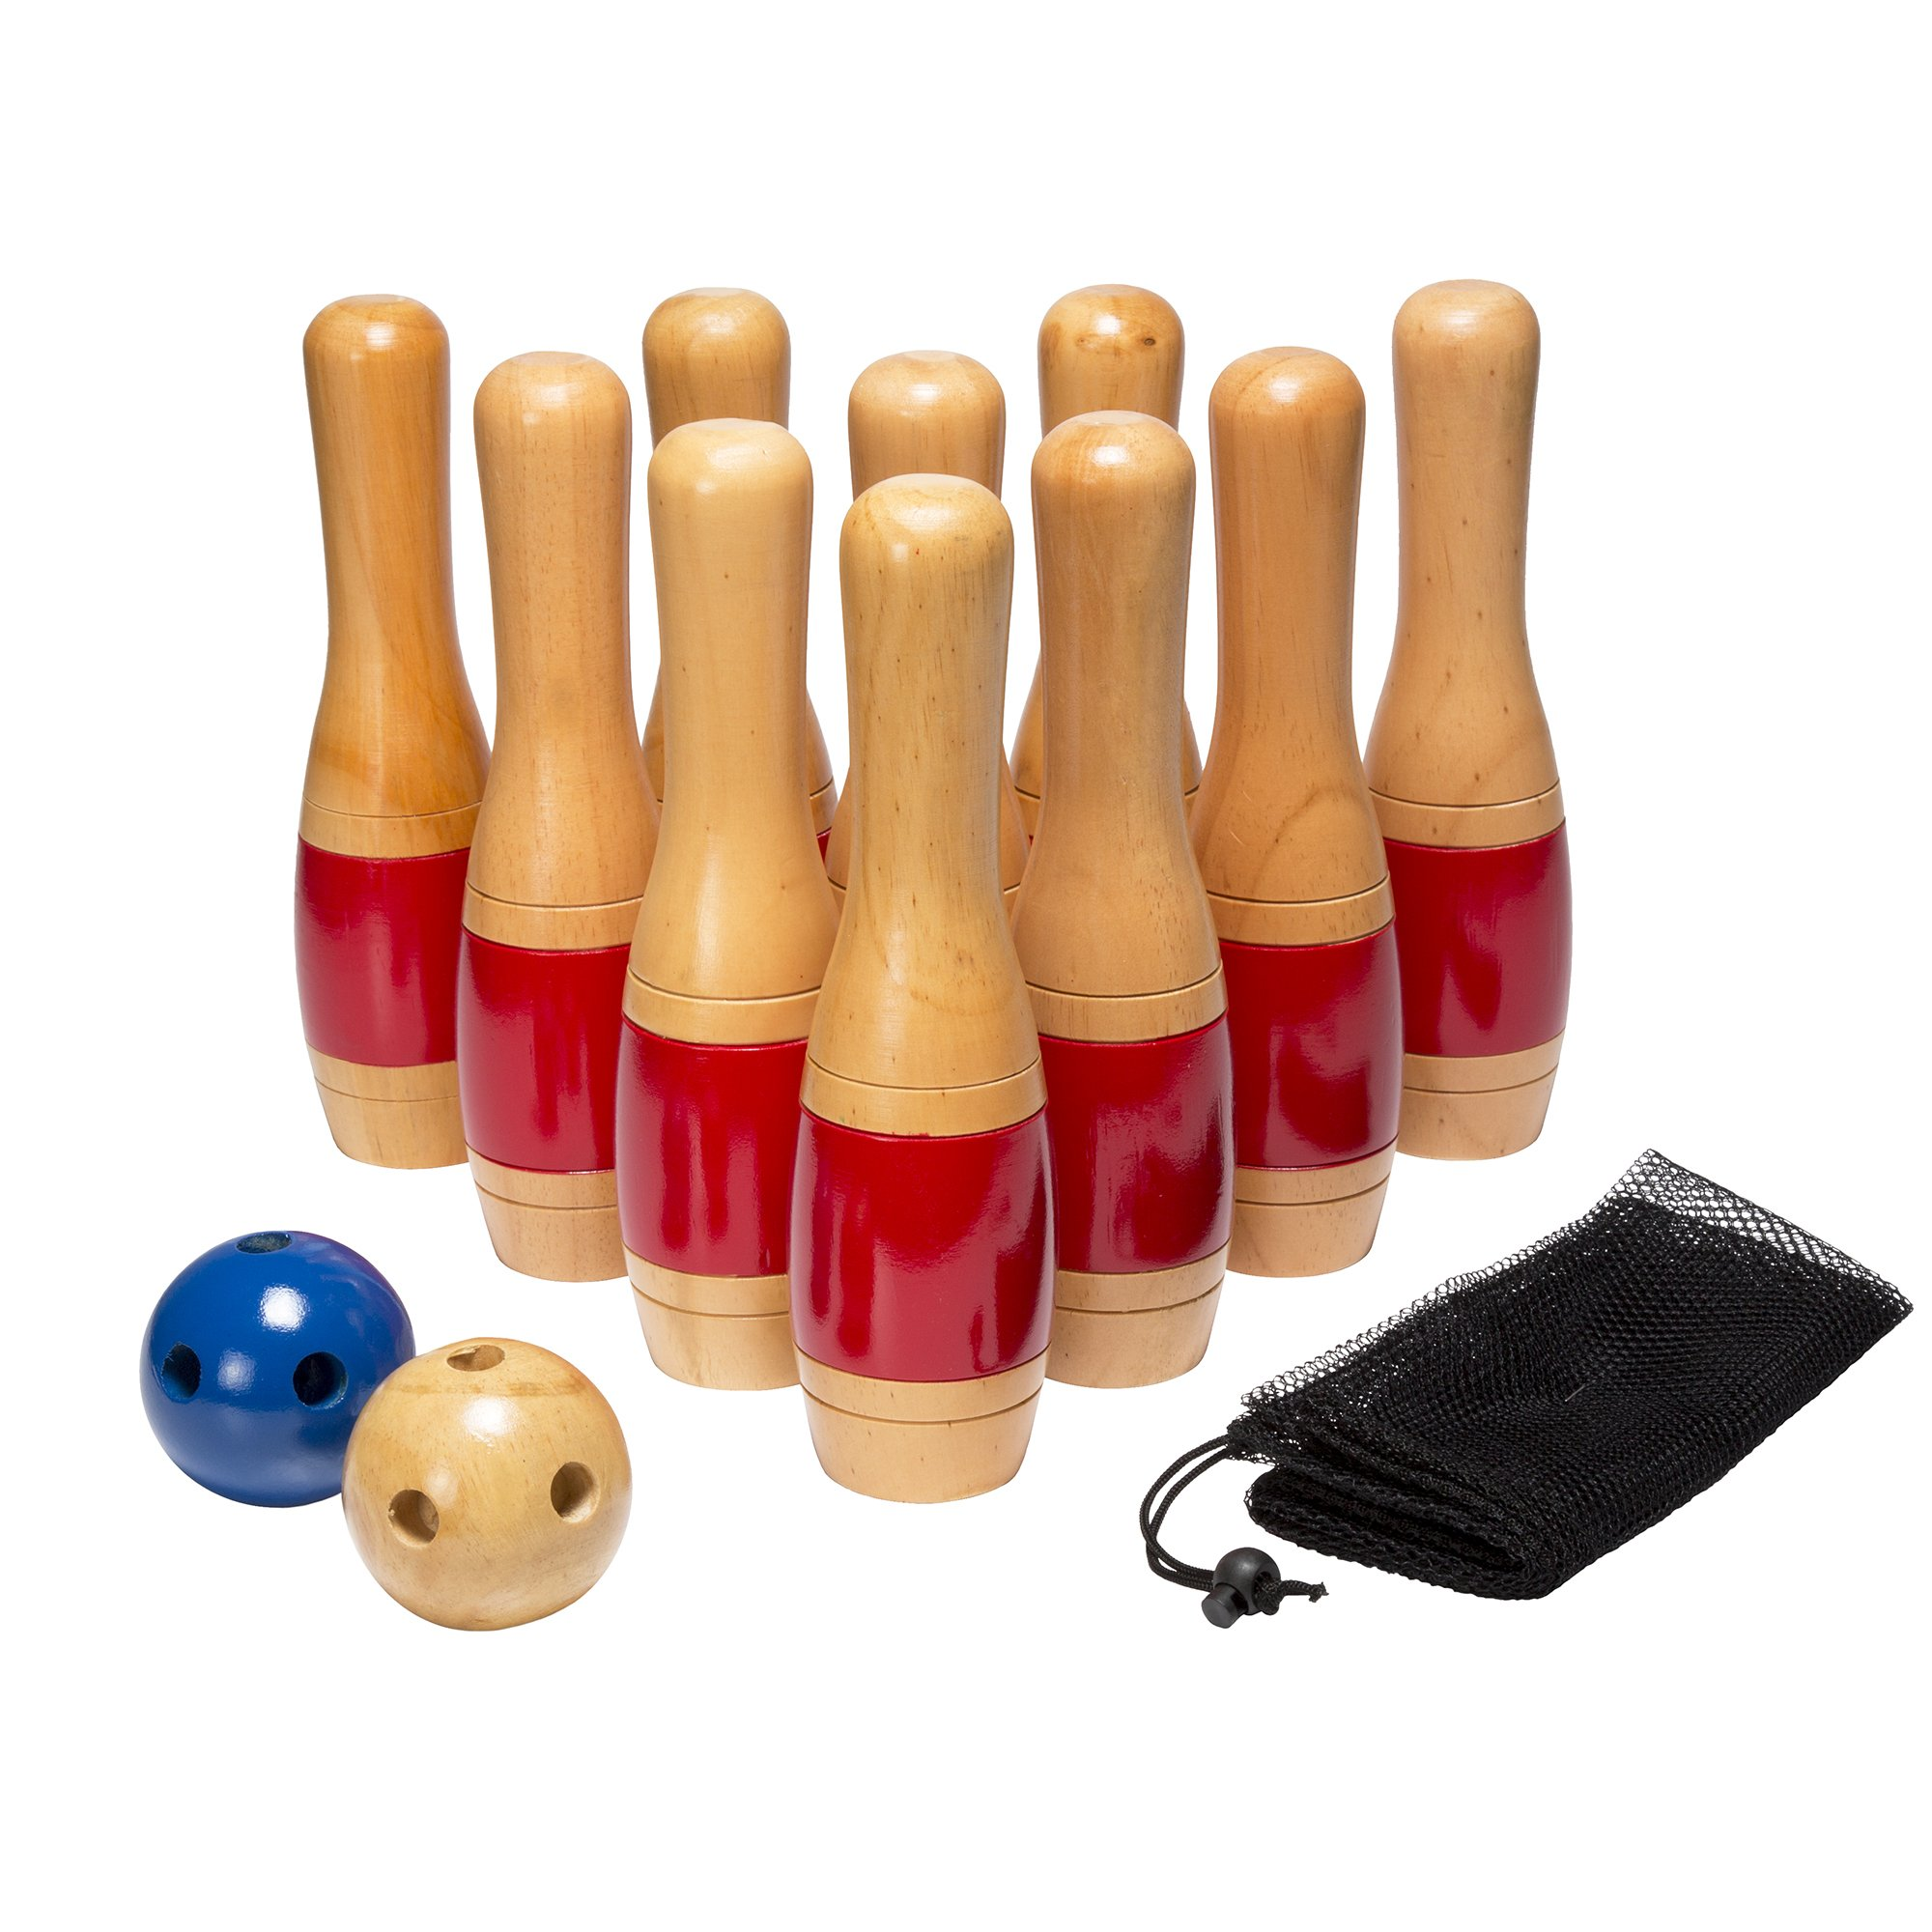 Lawn Bowling Game/Skittle Ball- Indoor and Outdoor Fun for Toddlers, Kids, Adults -10 Wooden Pins, 2 Balls, and Mesh Bag Set by Hey! Play! (11 Inch) by Hey! Play!